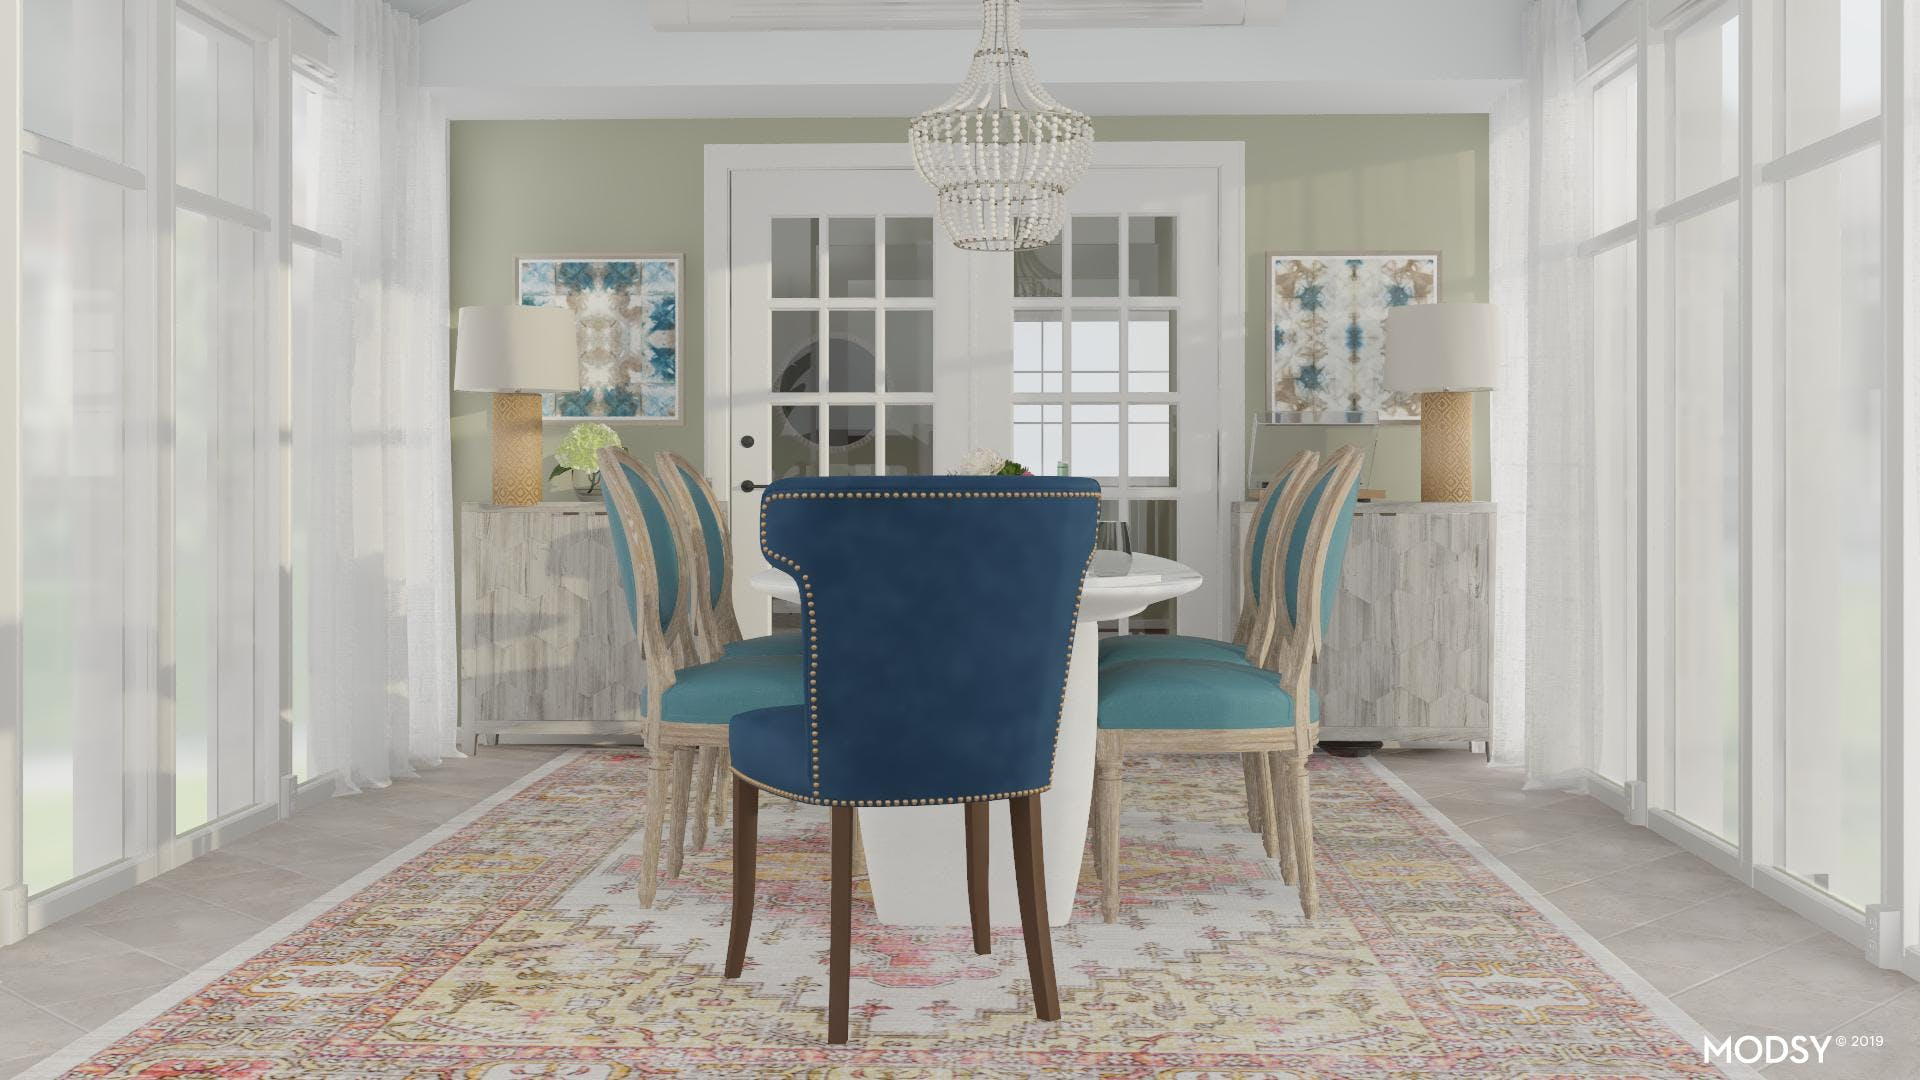 Vibrant Upholstery in a Coastal Dining Room